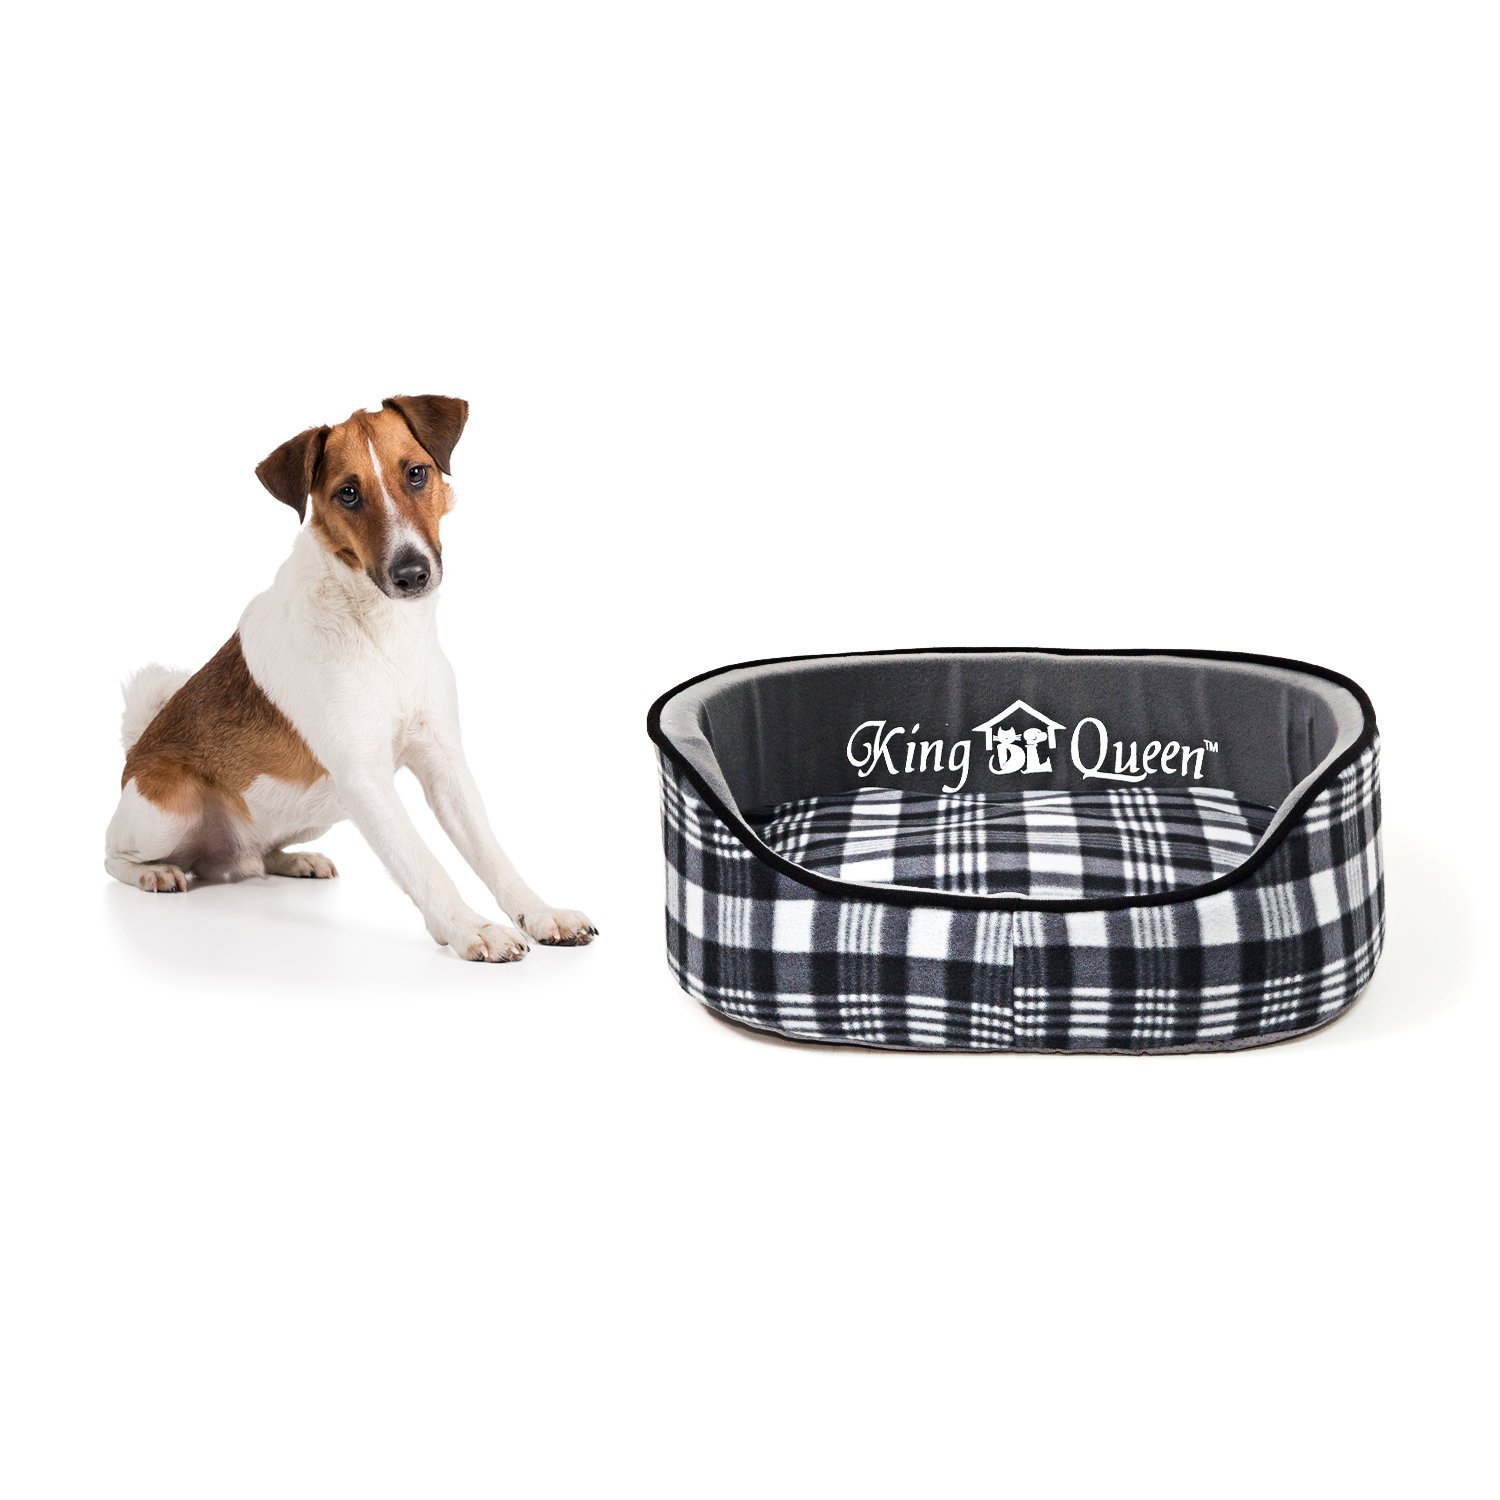 5.-Animals-Favorite-Dog-Bed-20x16.6-inches 10 Best Dog Beds for Small Dogs